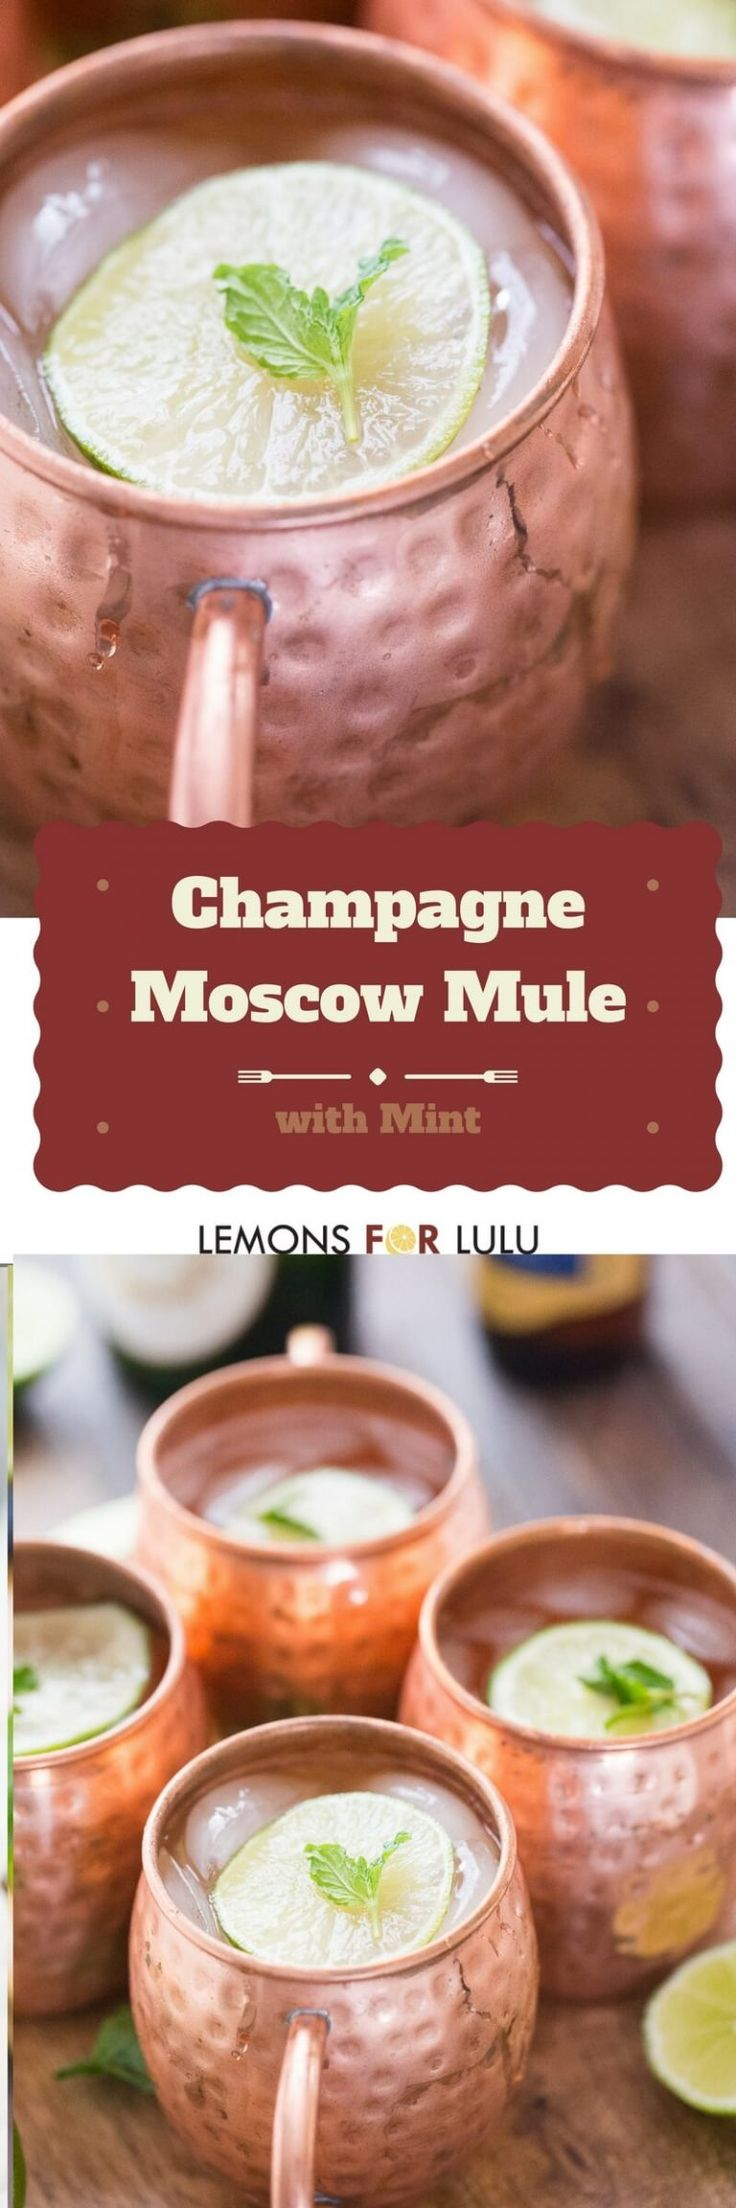 Moscow mule with mint syrup gets topped with a little champagne for a bubbly, festive twist on a classic!